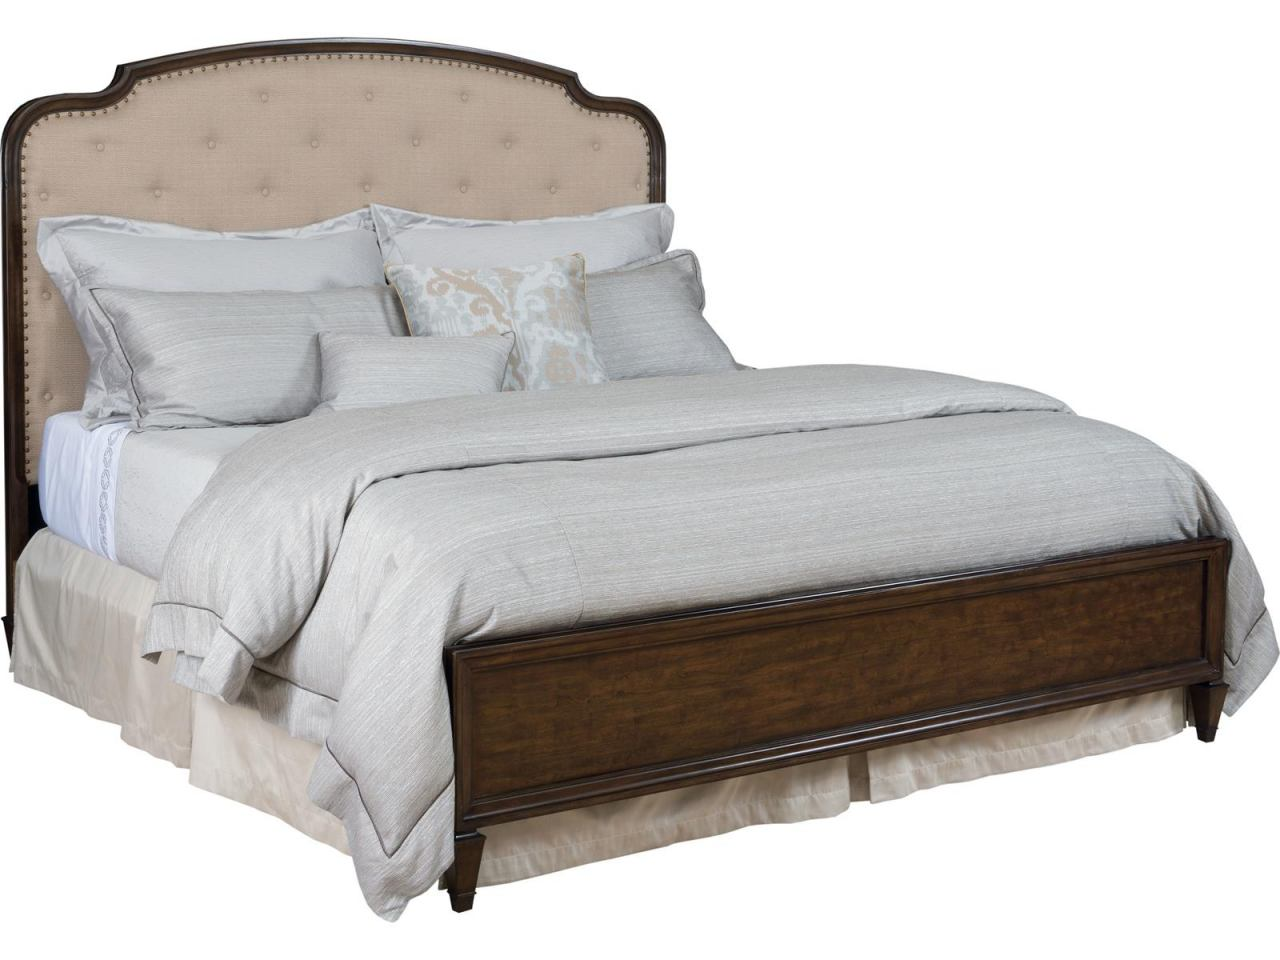 American Drew Grantham Hall Queen Panel Upholstered Bed in Cherry 512-313R CODE:UNIV20 for 20% Off